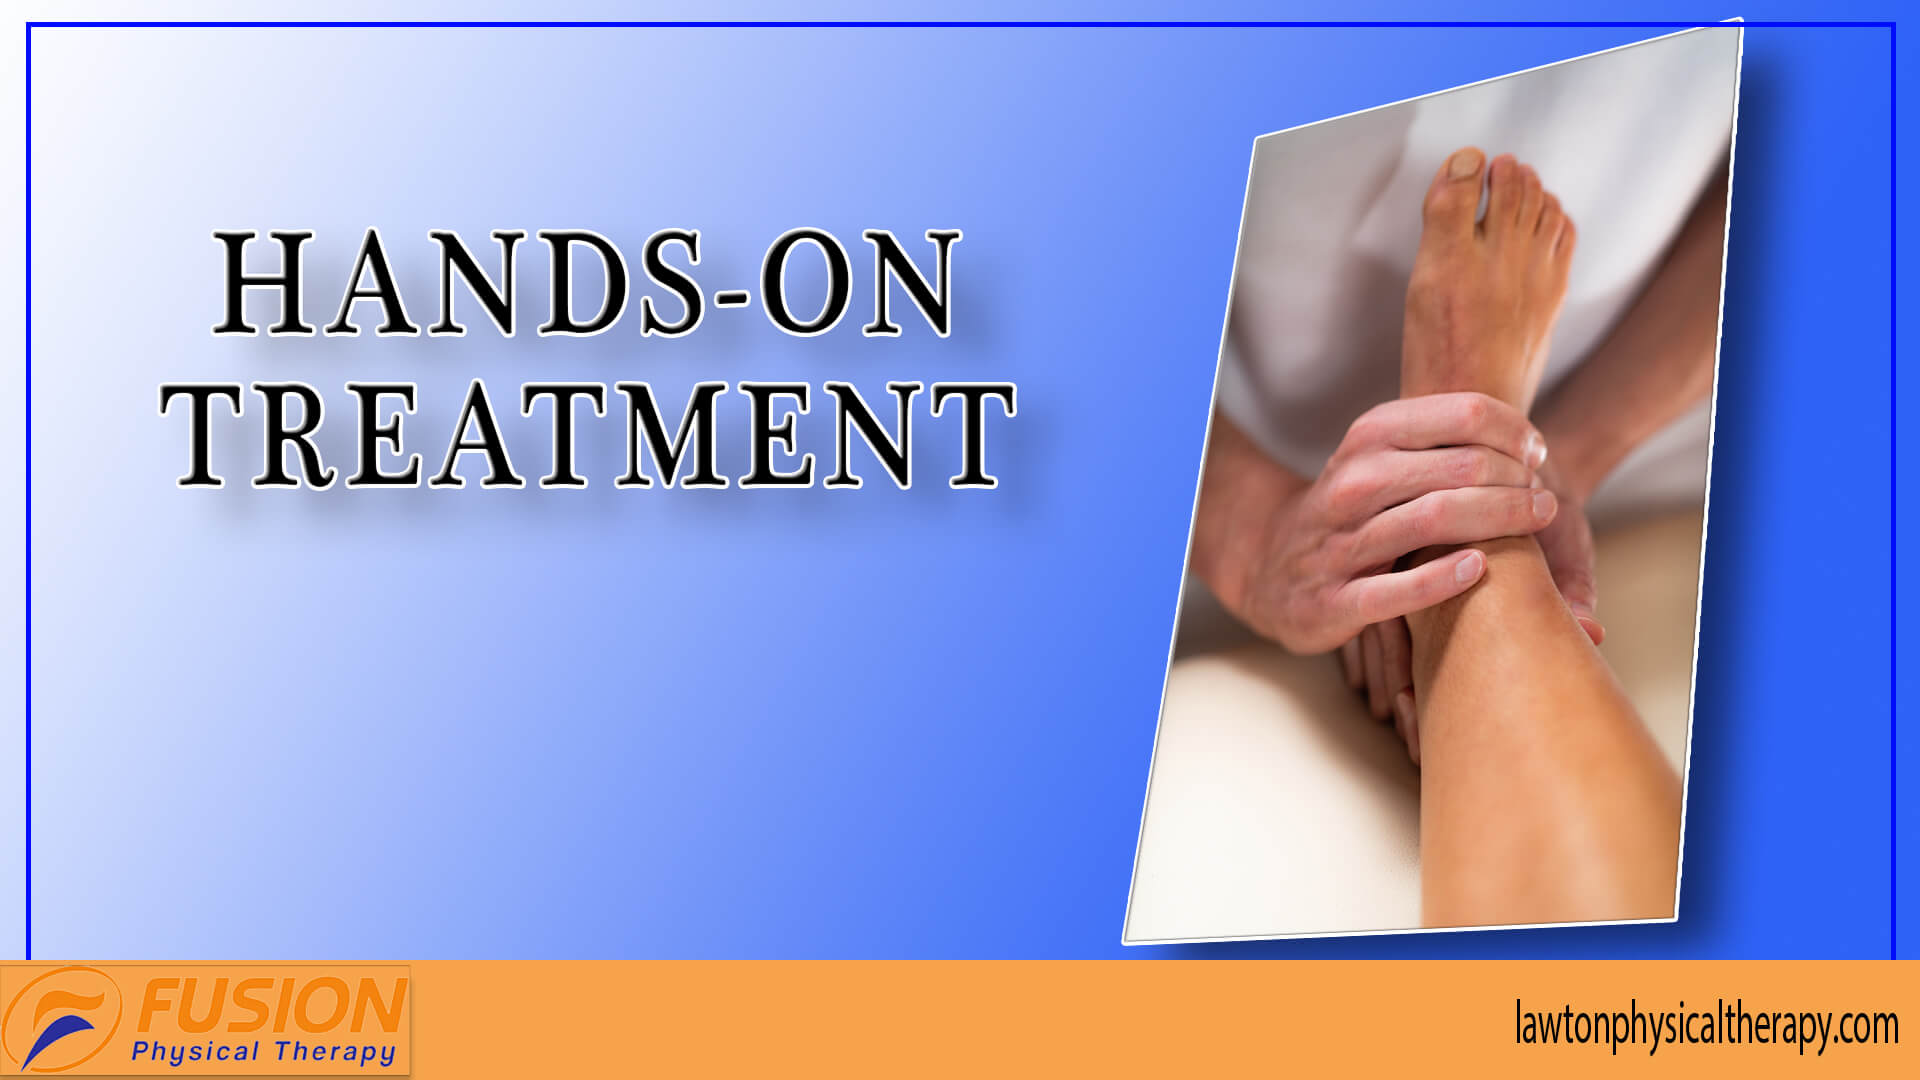 Hands-on treatment